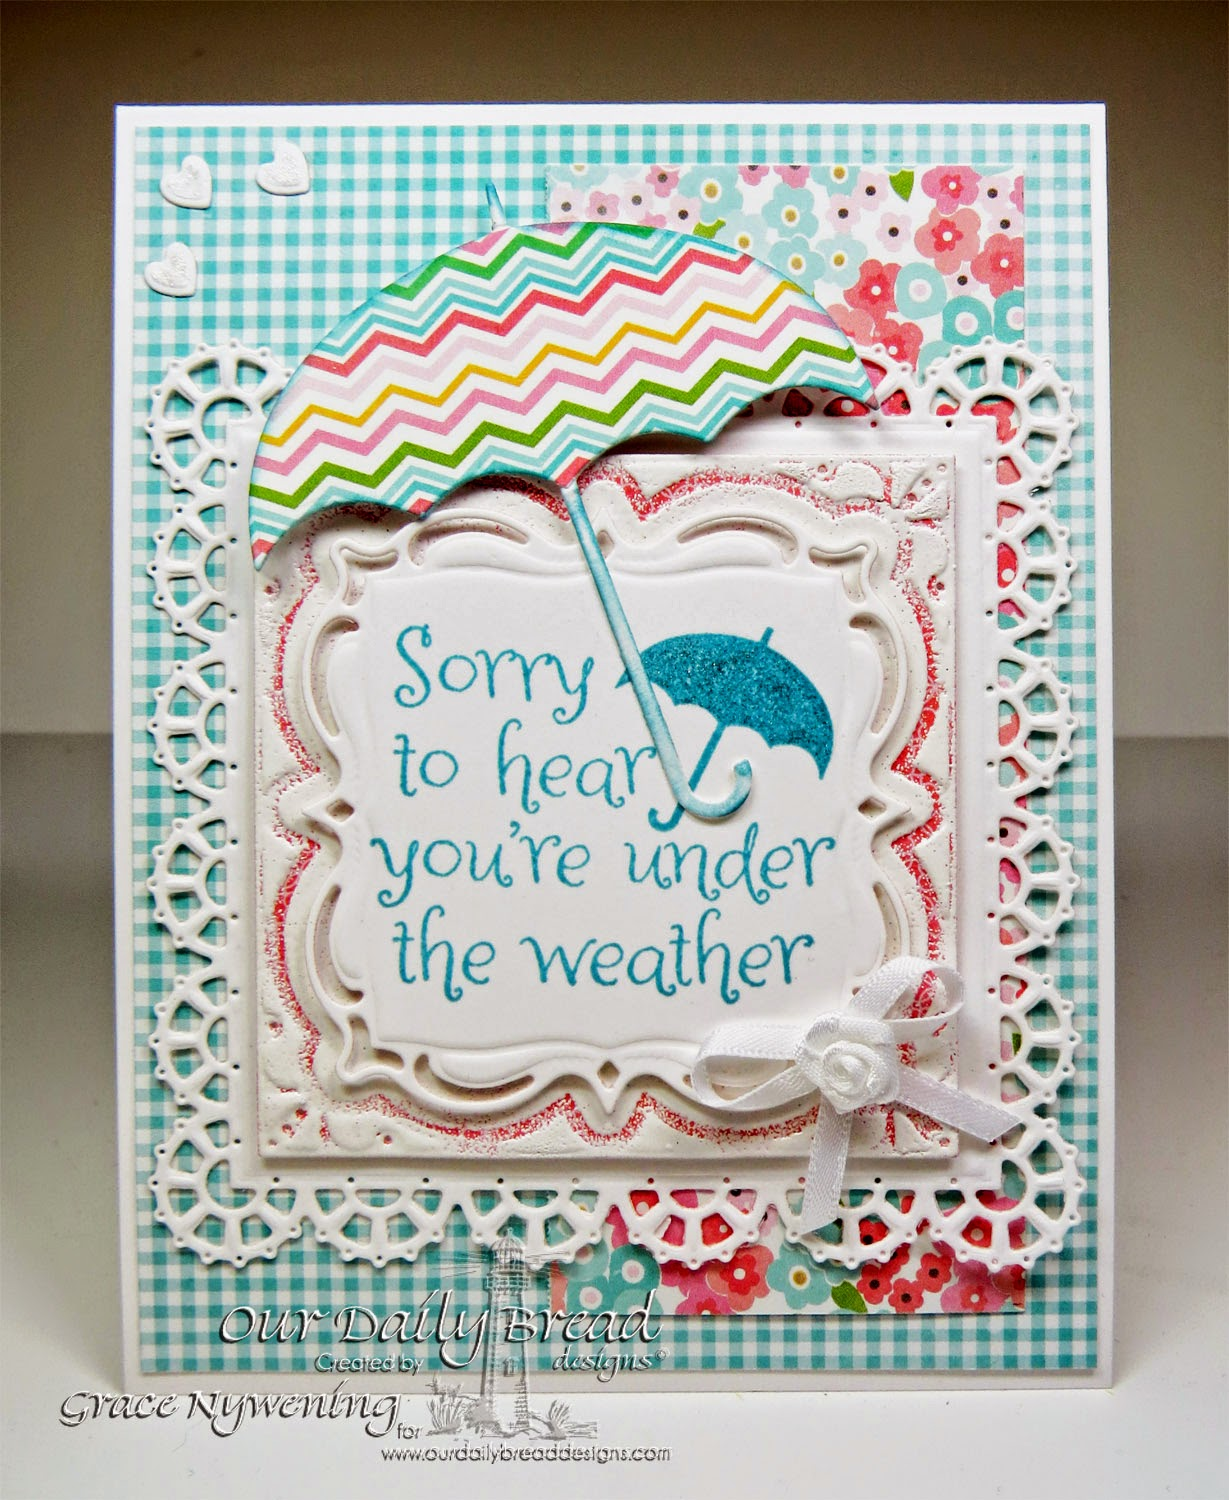 ODBD stamps: April Showers, Layered Lacey Squares Dies, Umbrella Die, Clouds and Raindrops dies, designed by Grace Nywening